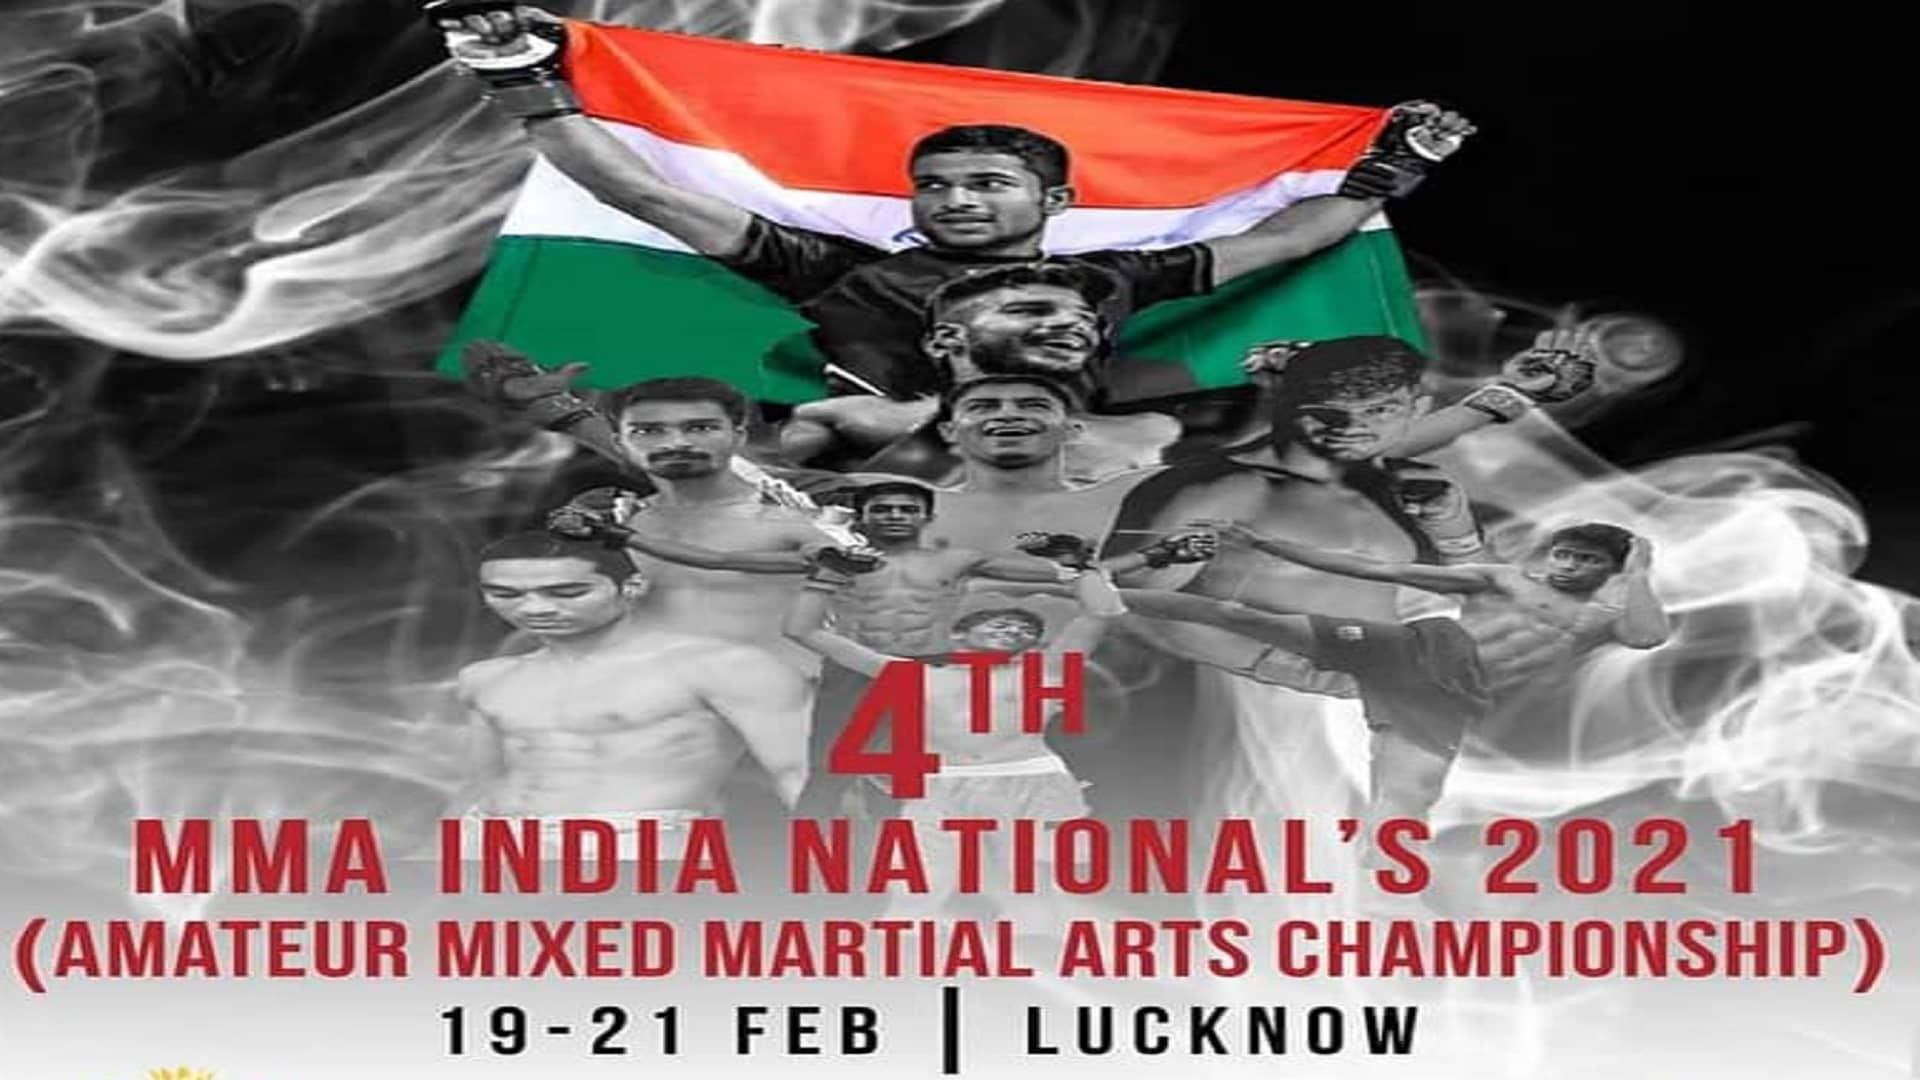 https://lockerroom.in/blog/view/MMA-India-Nationals-2021-Winners